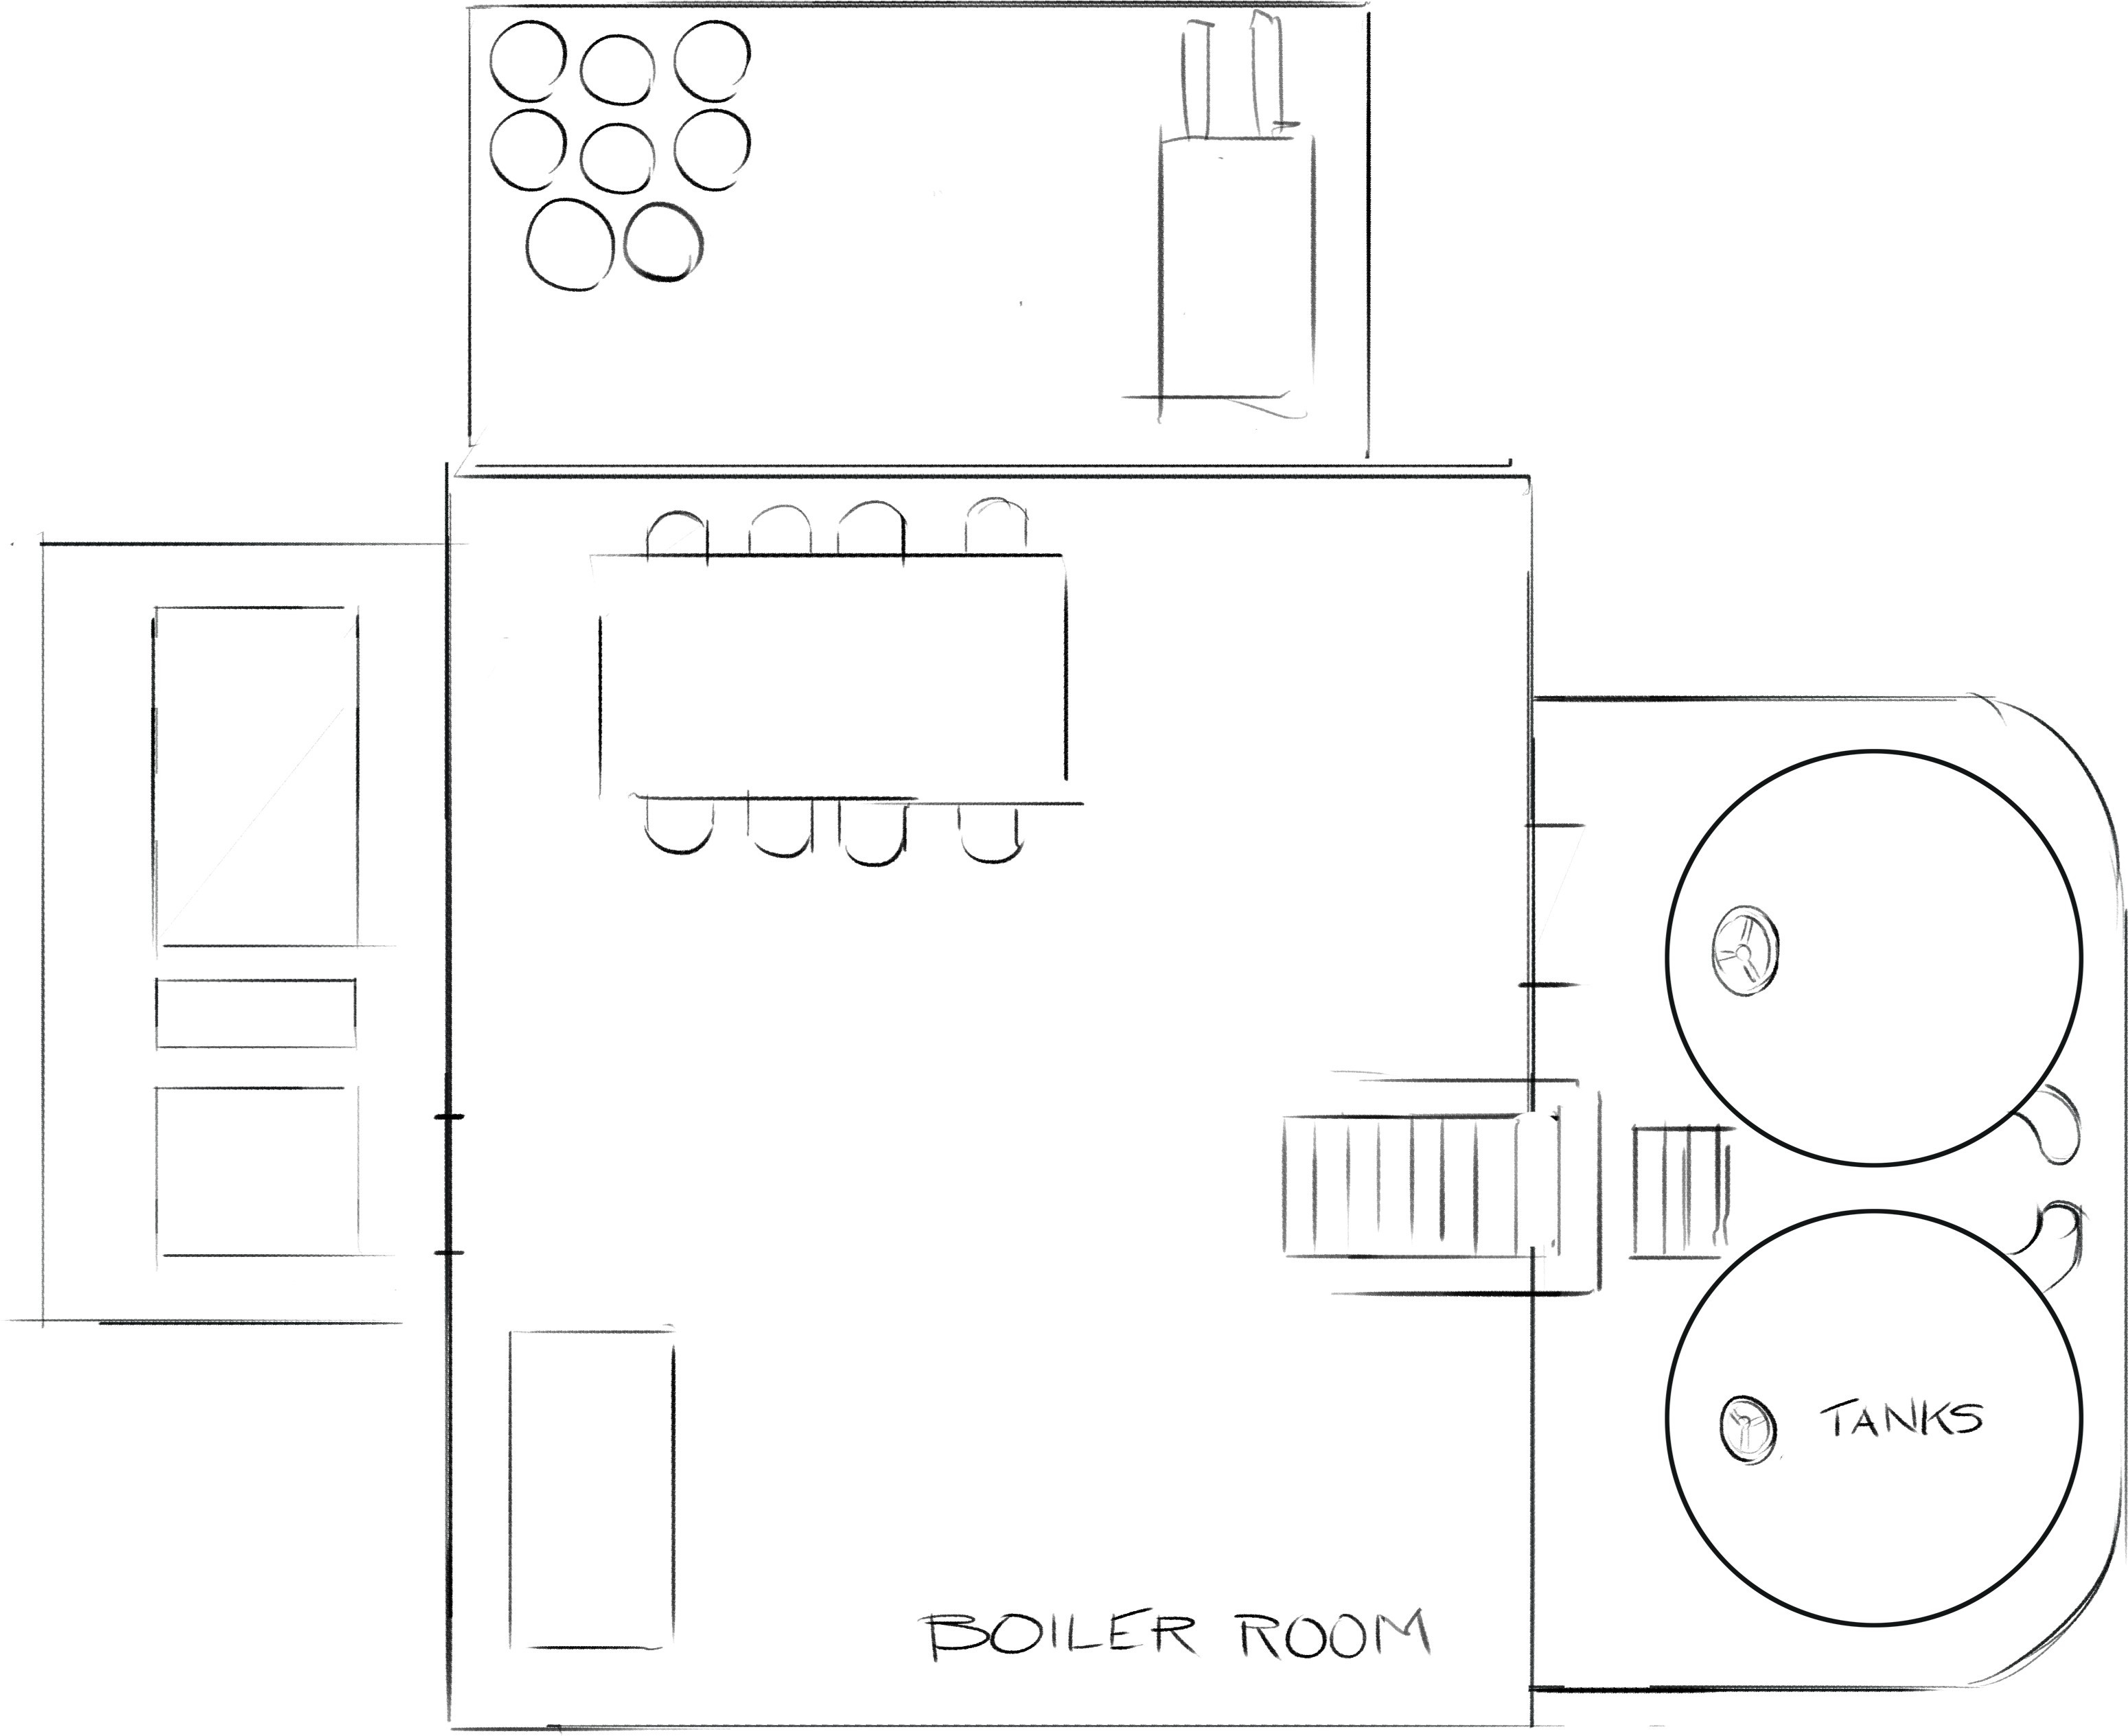 Lower level plan view